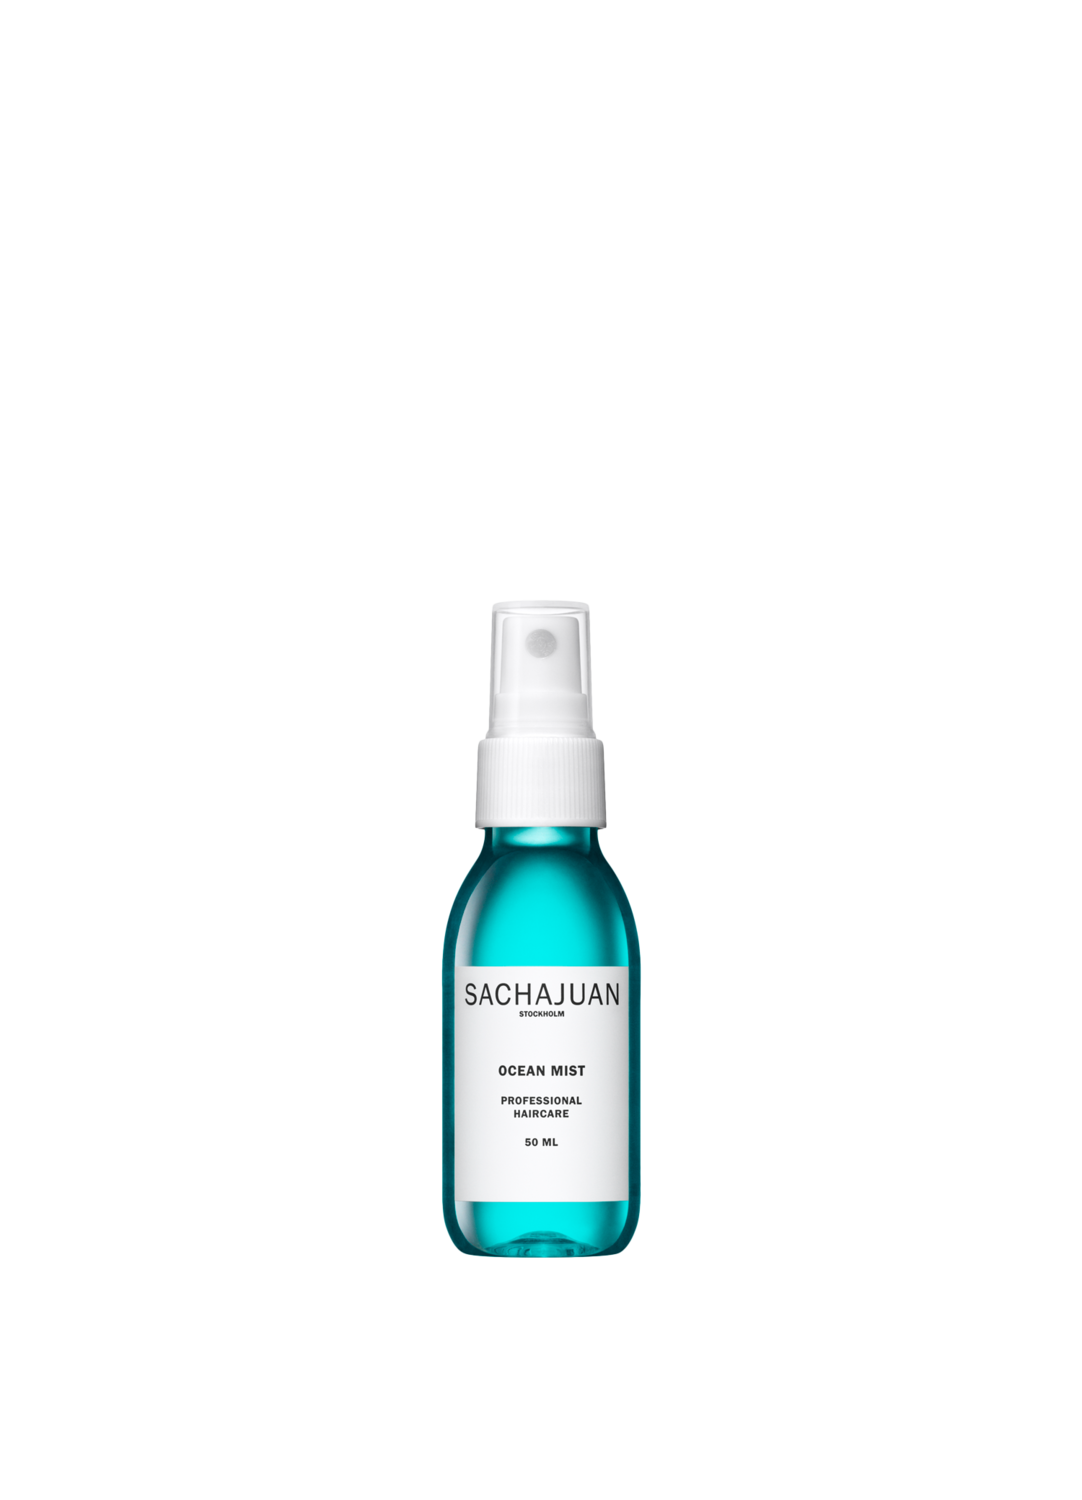 sachajuan ocean mist travel sized